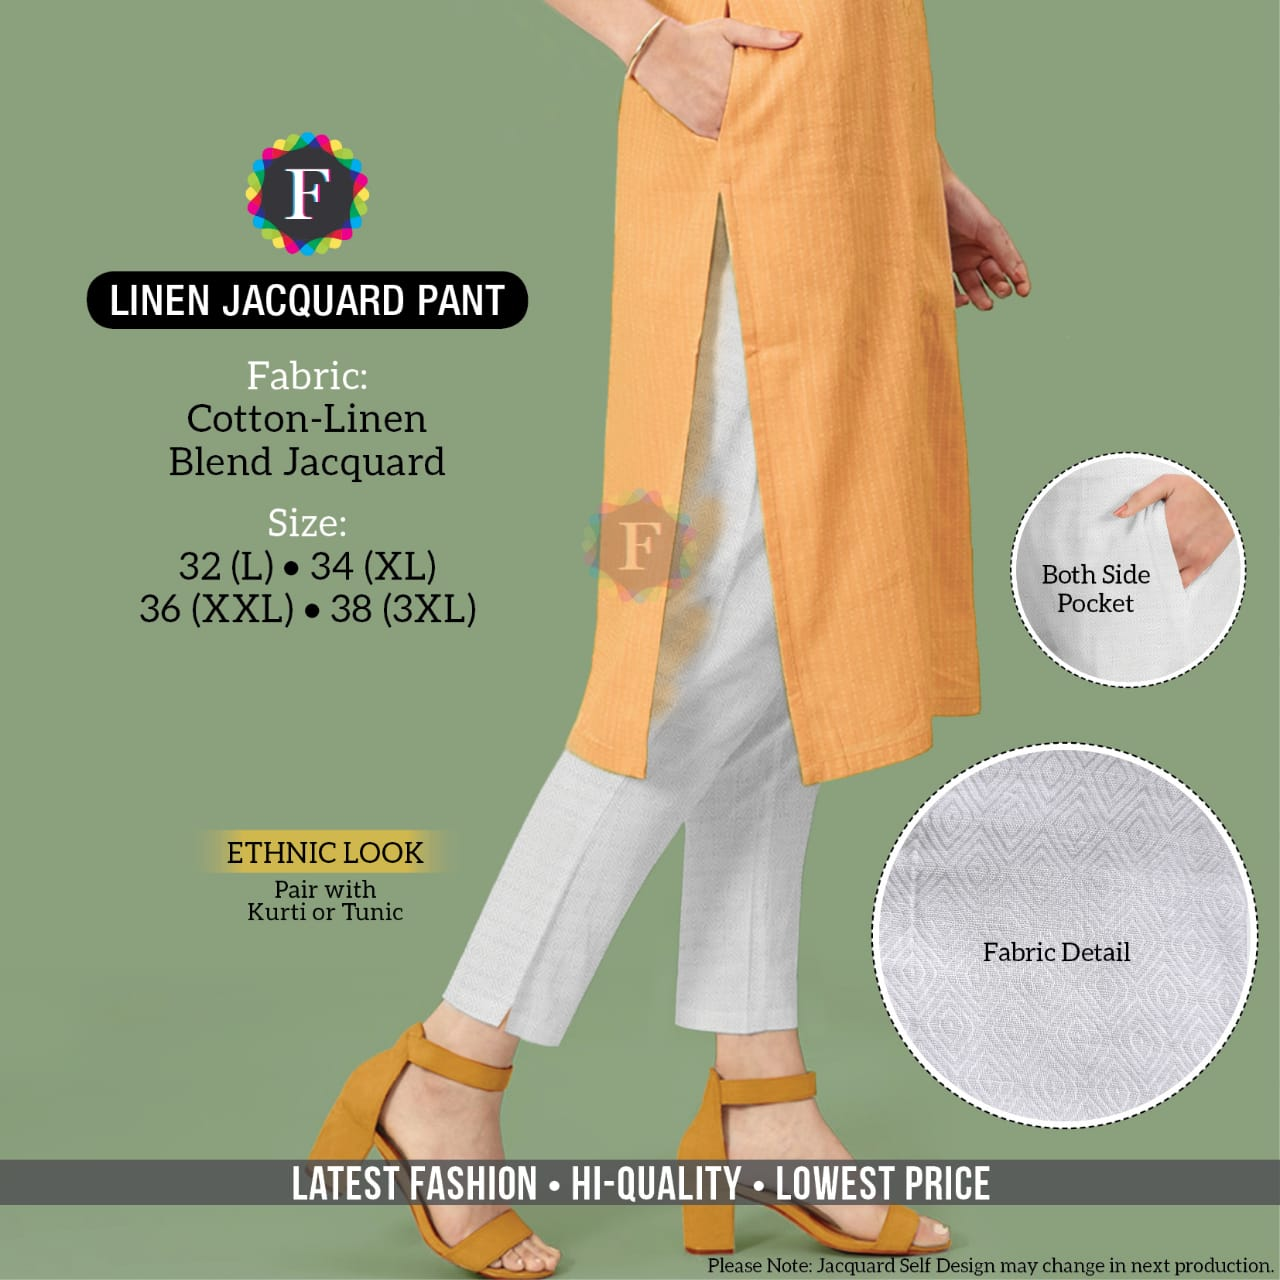 Linen Jacquard Pant Traditional Wear Bottom Pant Collection